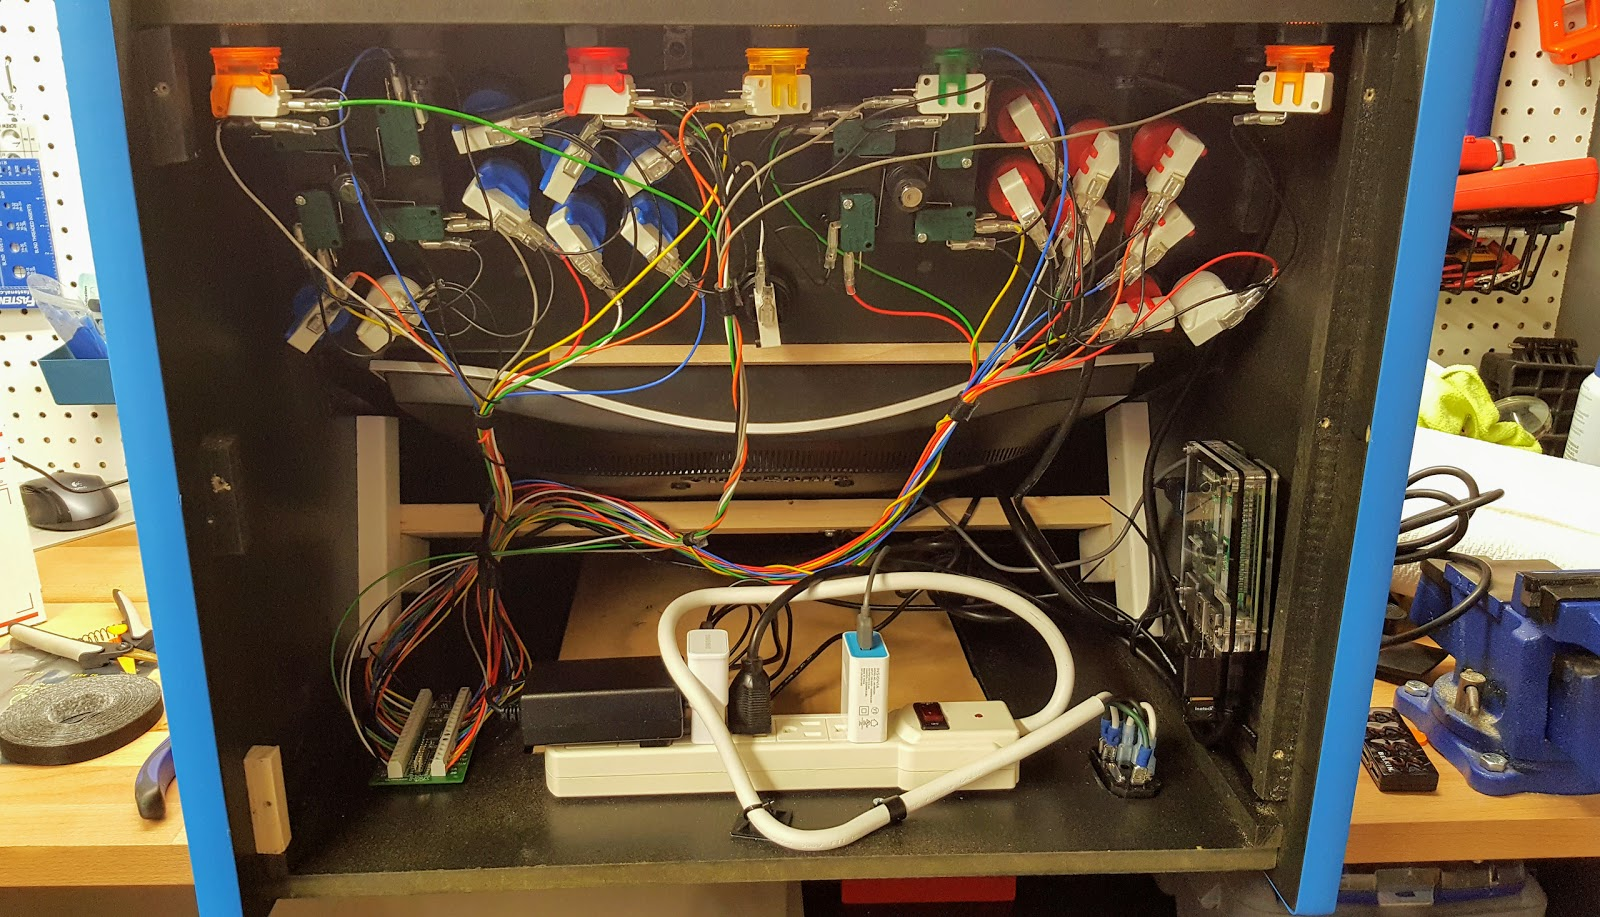 Mr Armageddons Project Log Tabletop Arcade Wiring And Wrapping Up Ipac Diagram With All The Completed Cabinet 95 Put Together Had To Do A Bit Of Work On Control Configuration For New Usb Encoder